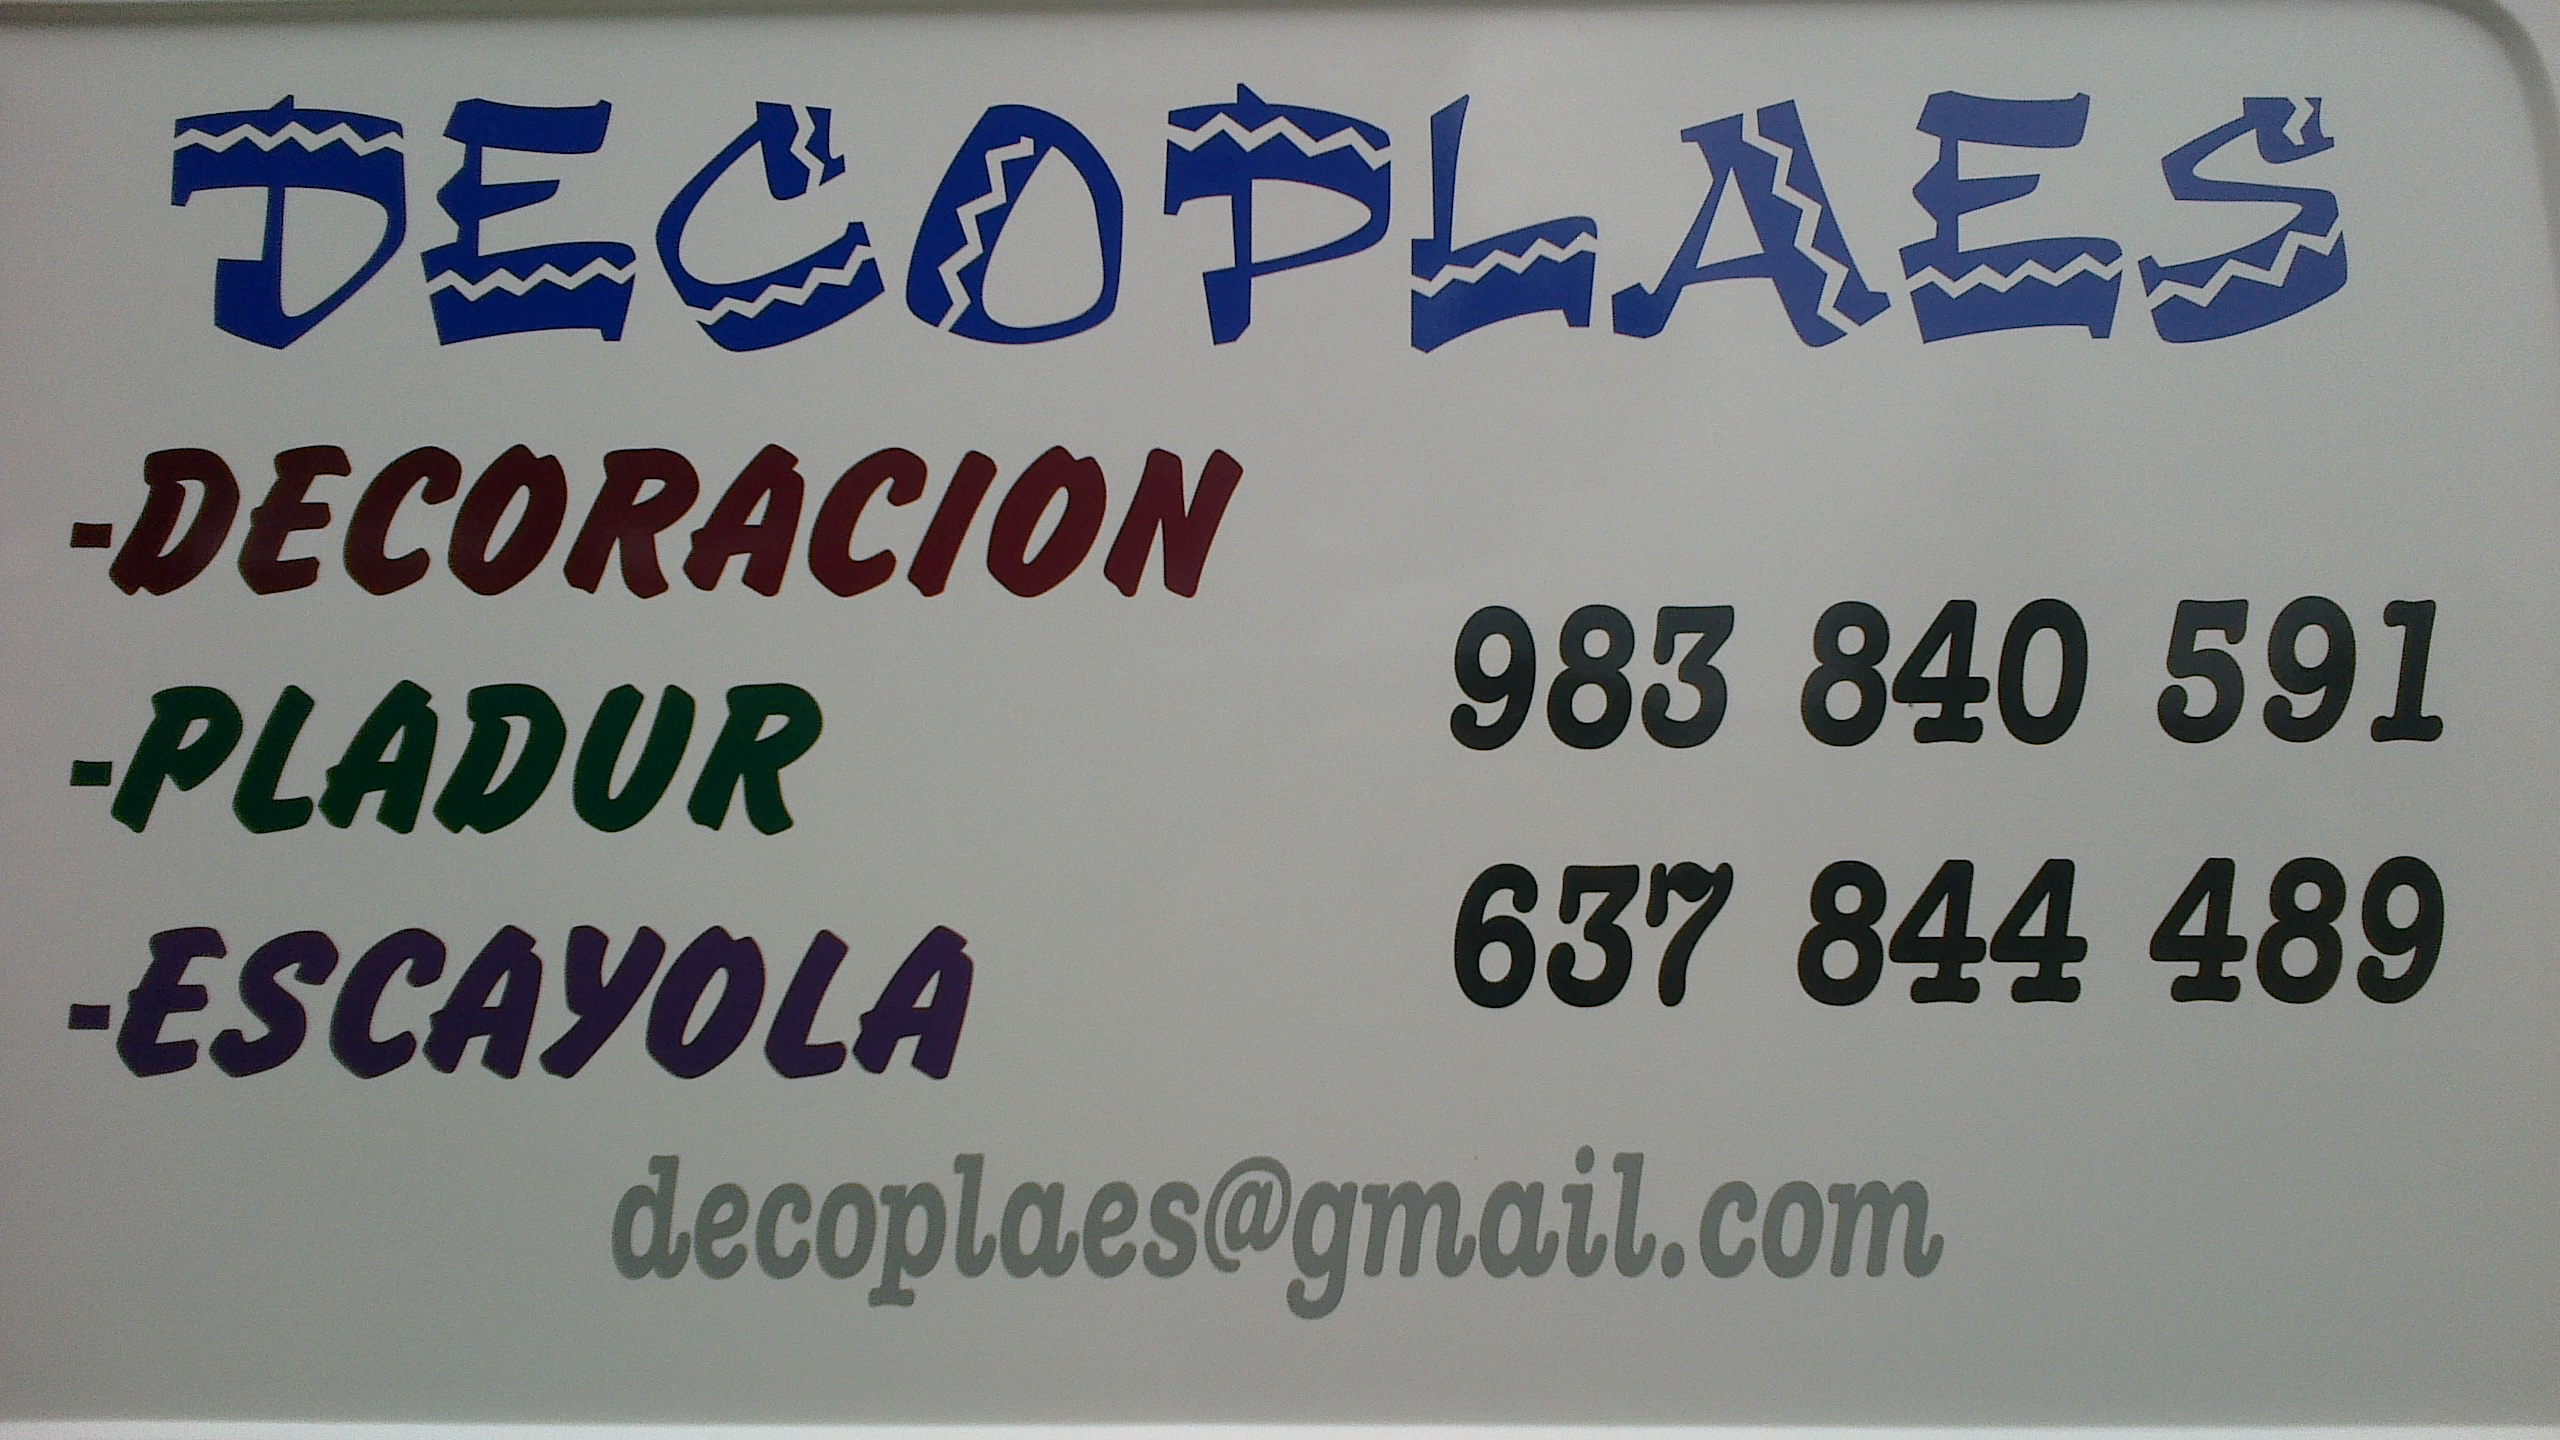 Decoplaes